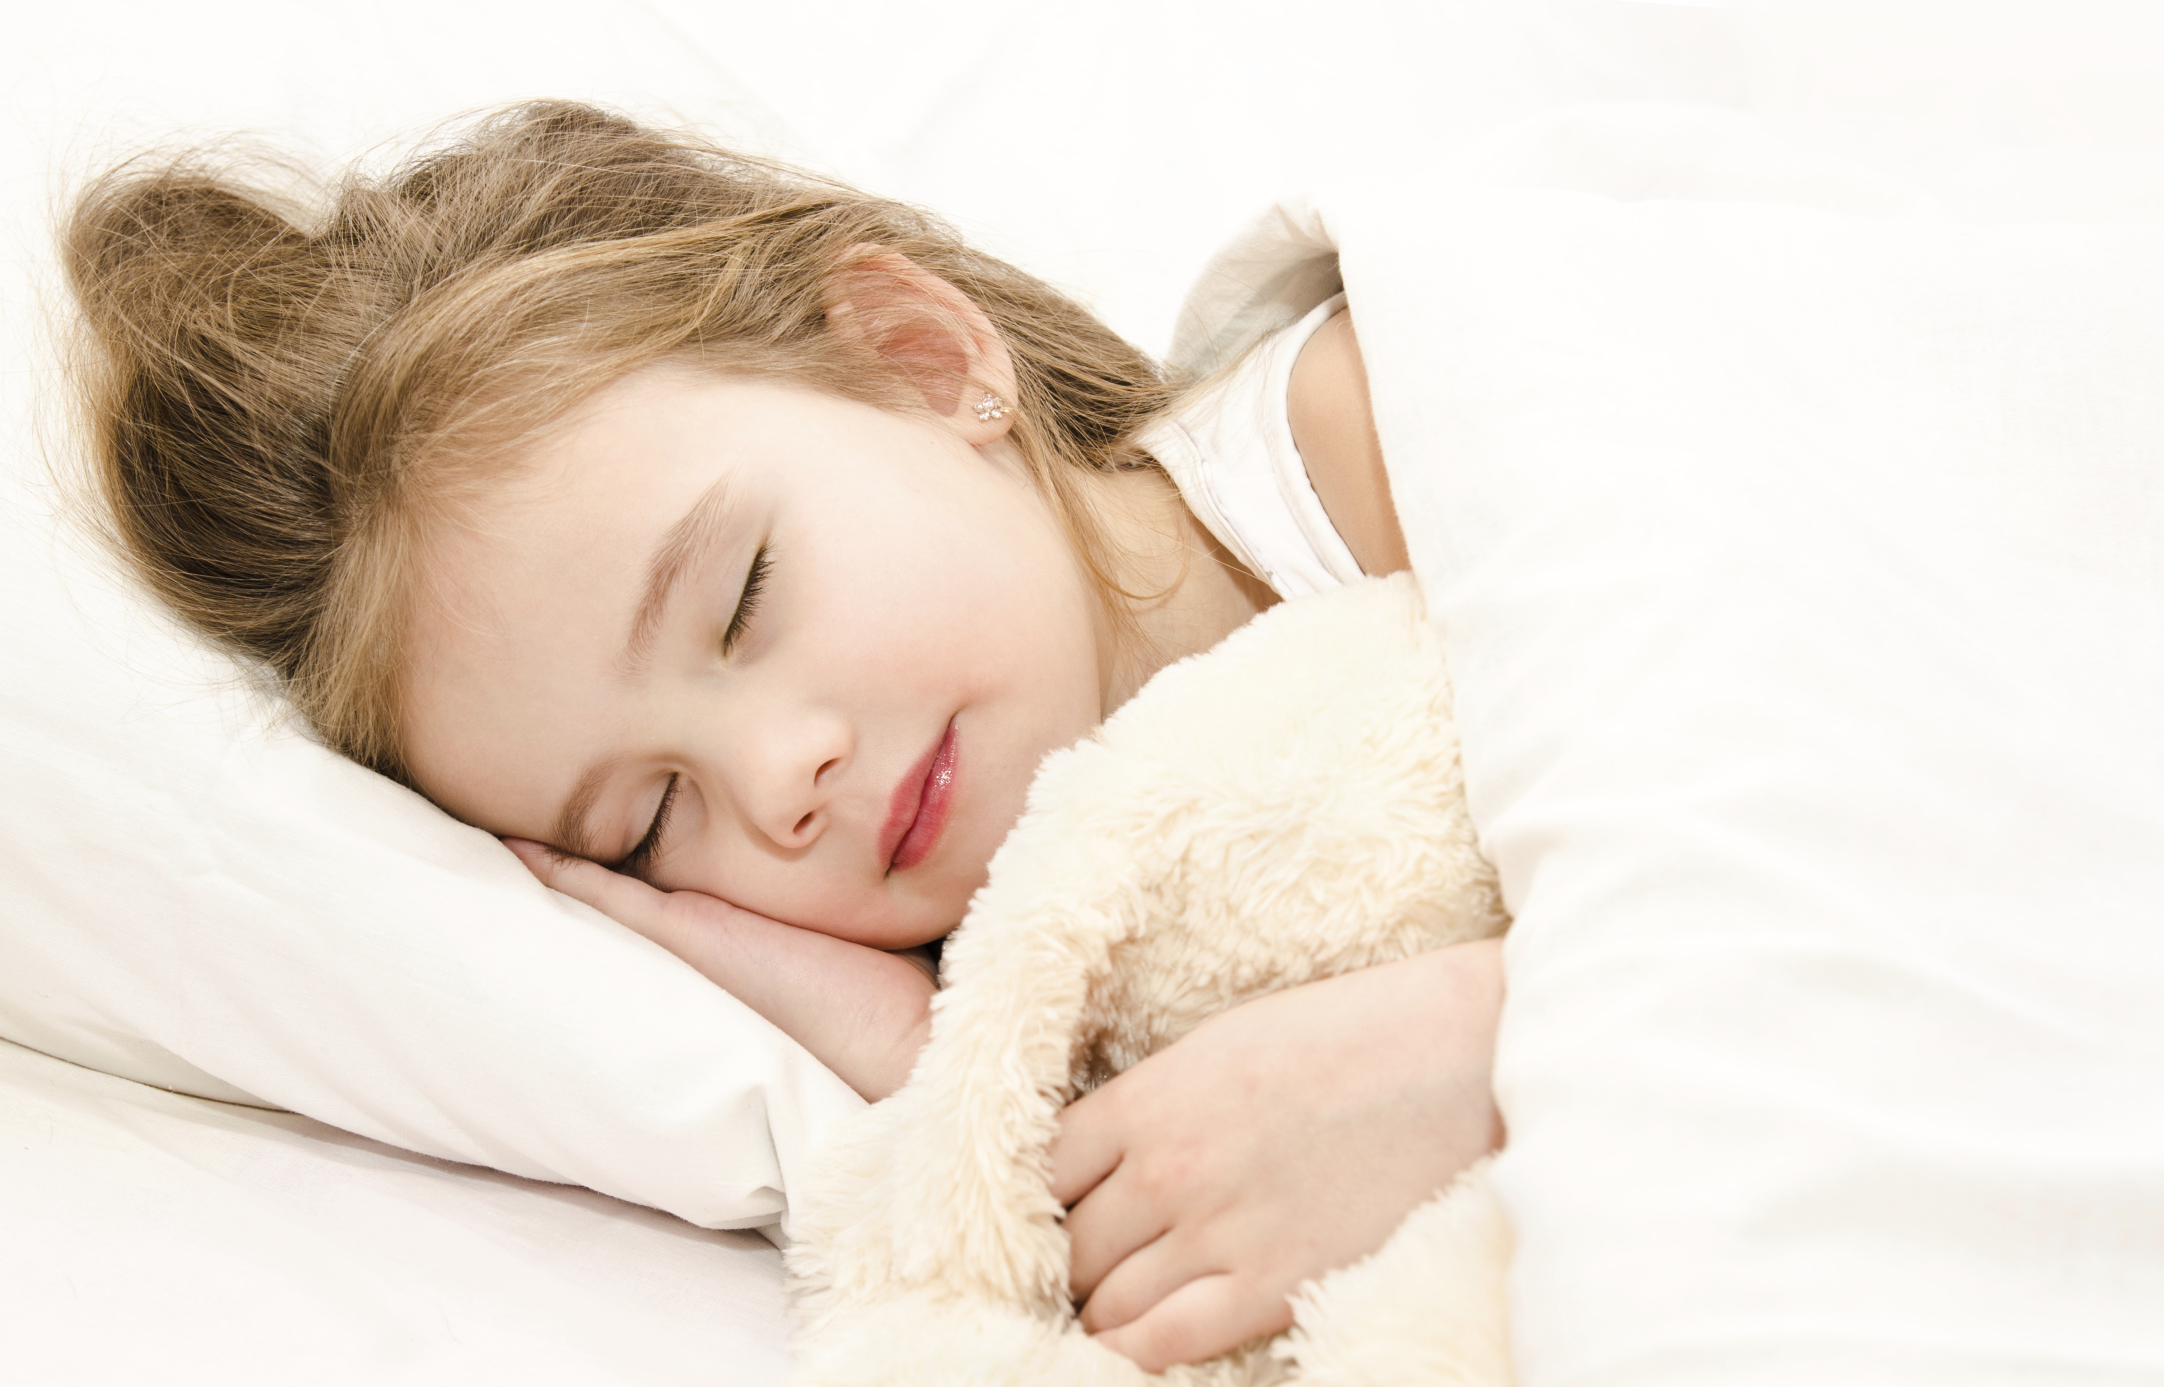 How to Get a Hyper Child to Bed | LIVESTRONG.COM